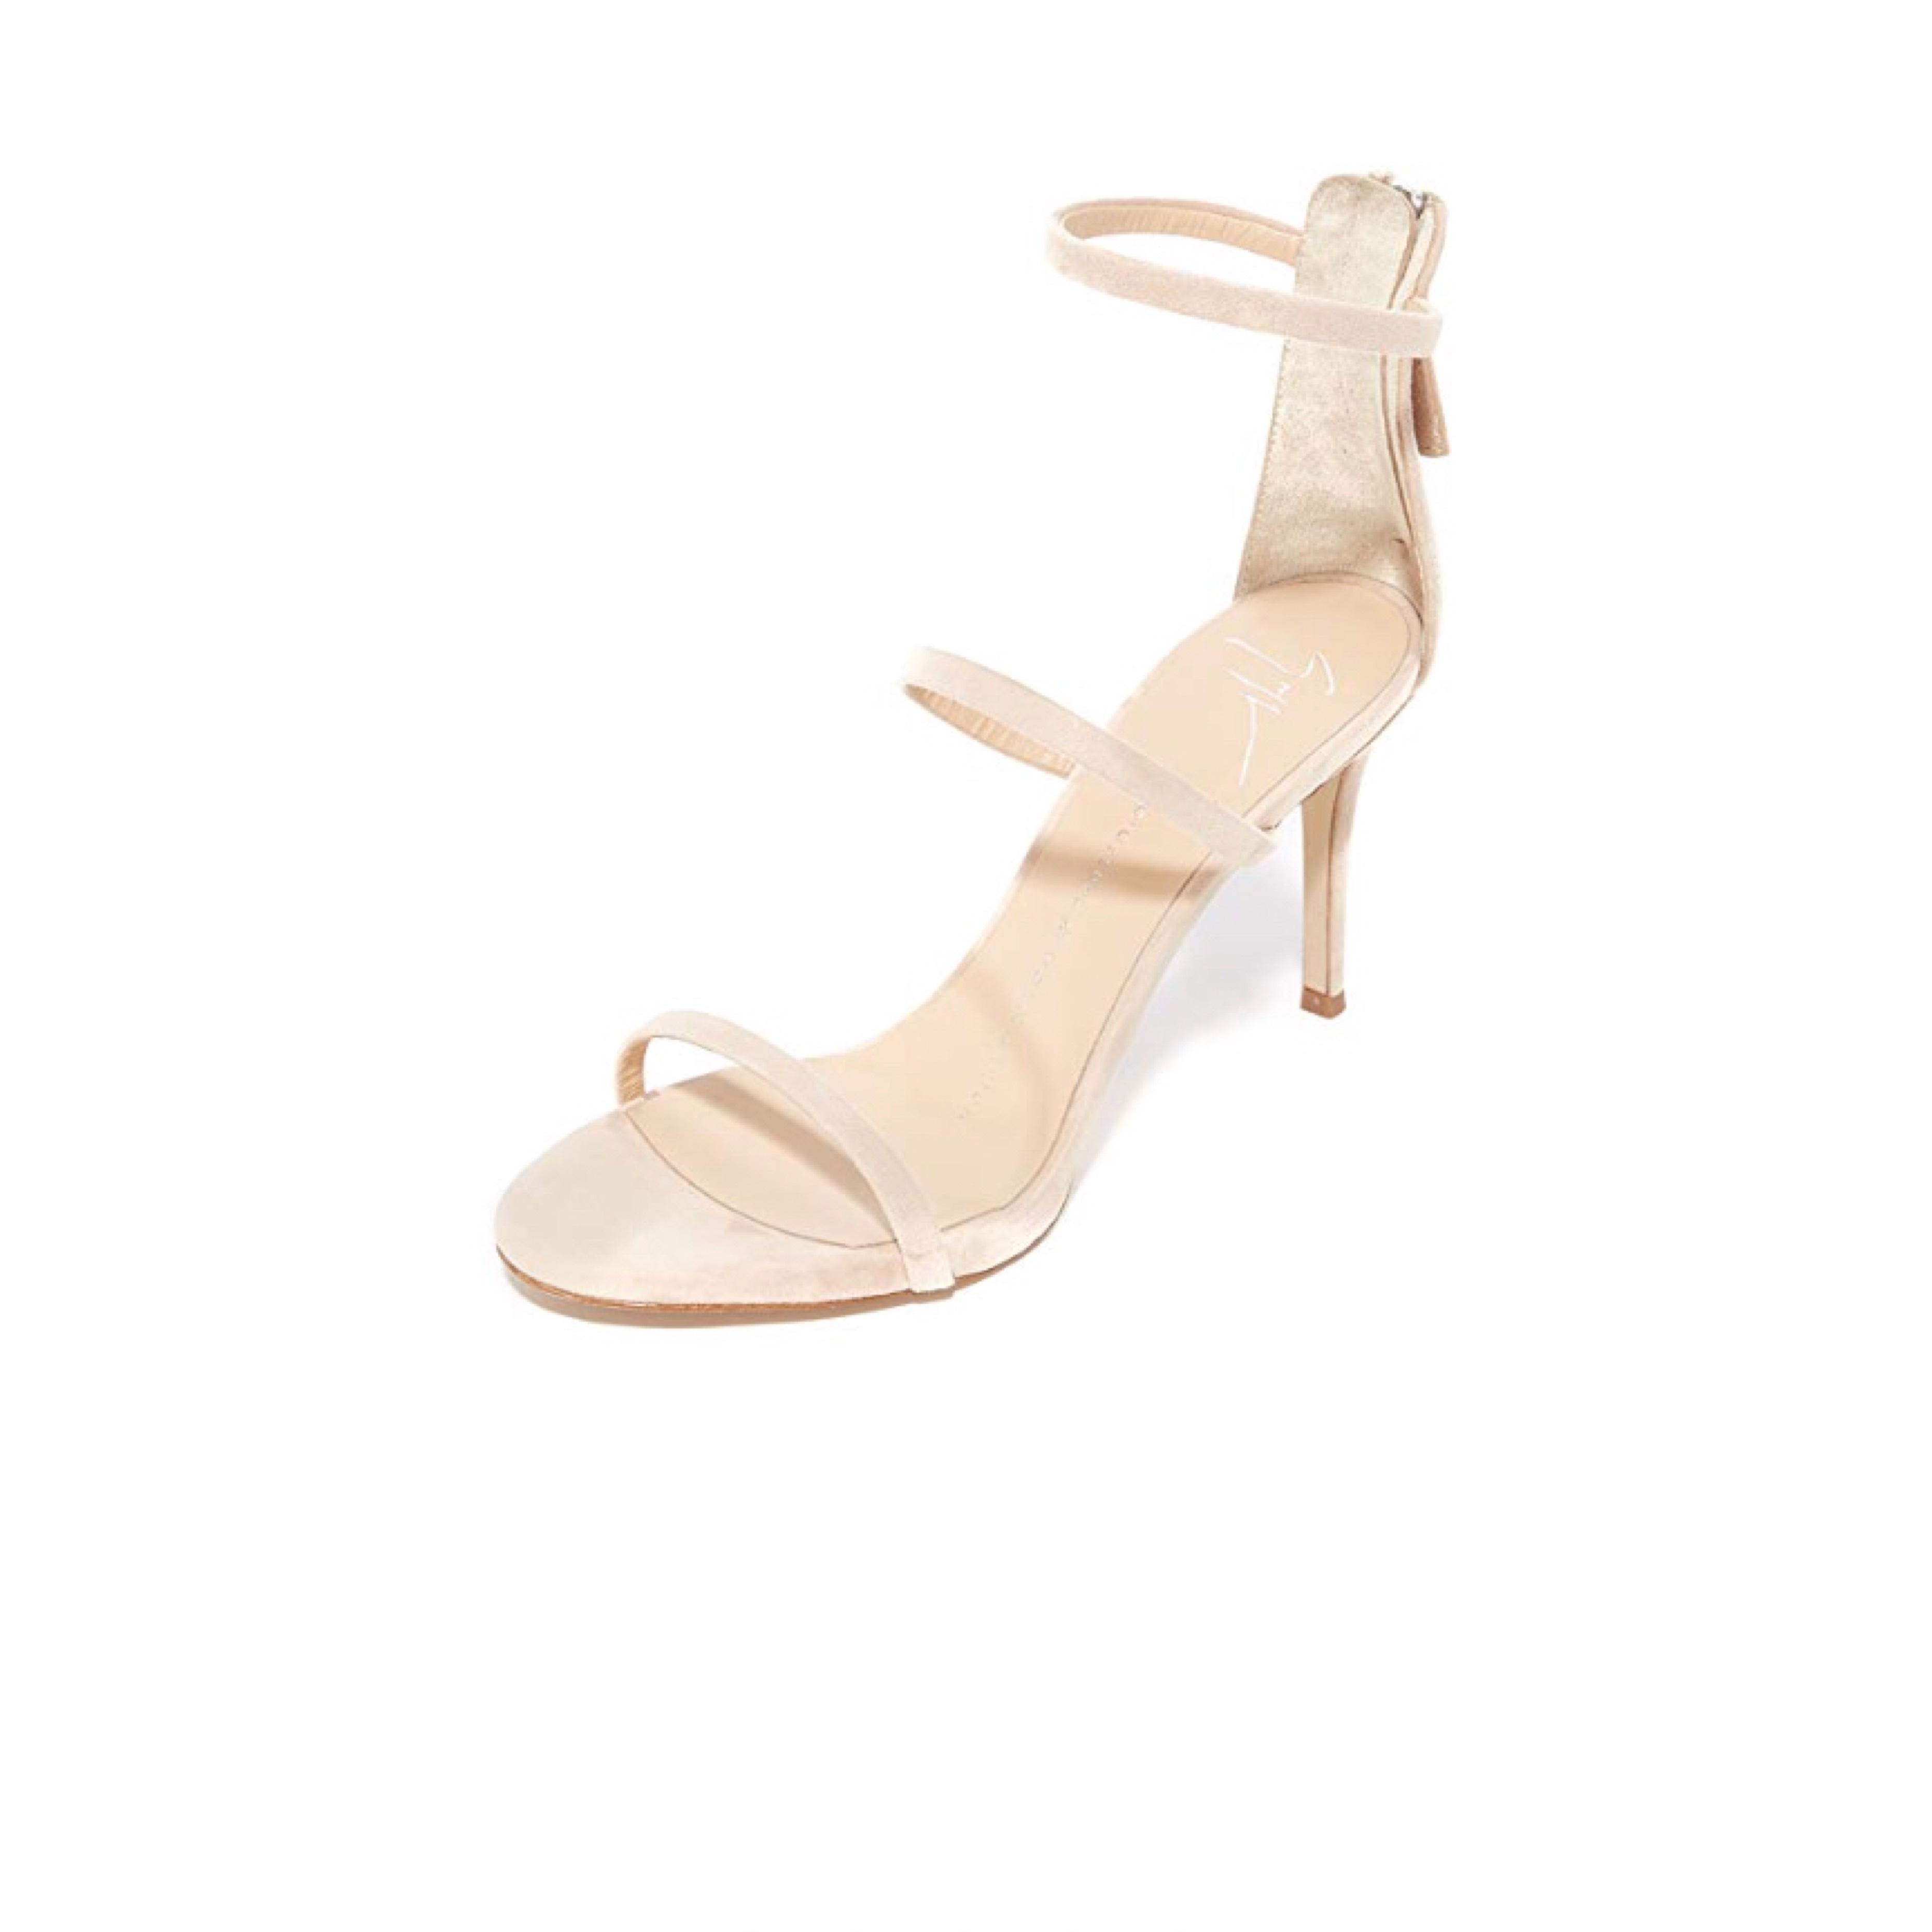 Giuseppe Zanotti Tan Alien Strappy Sandals Size US 6 Regular (M, B)